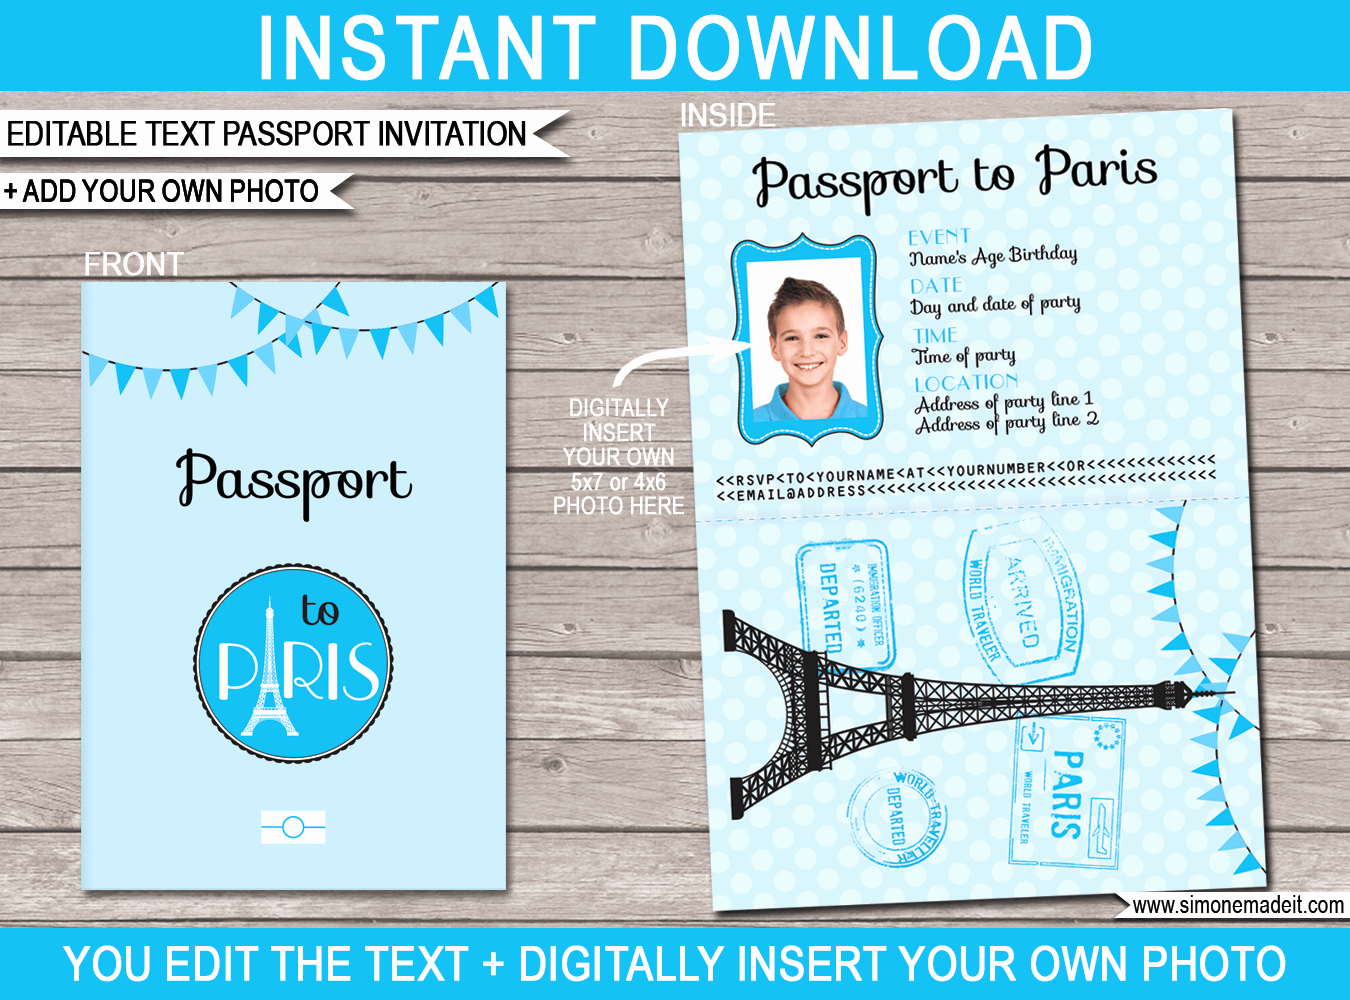 Passport to Paris Invitation Lovely Paris Passport Birthday Invitation Template